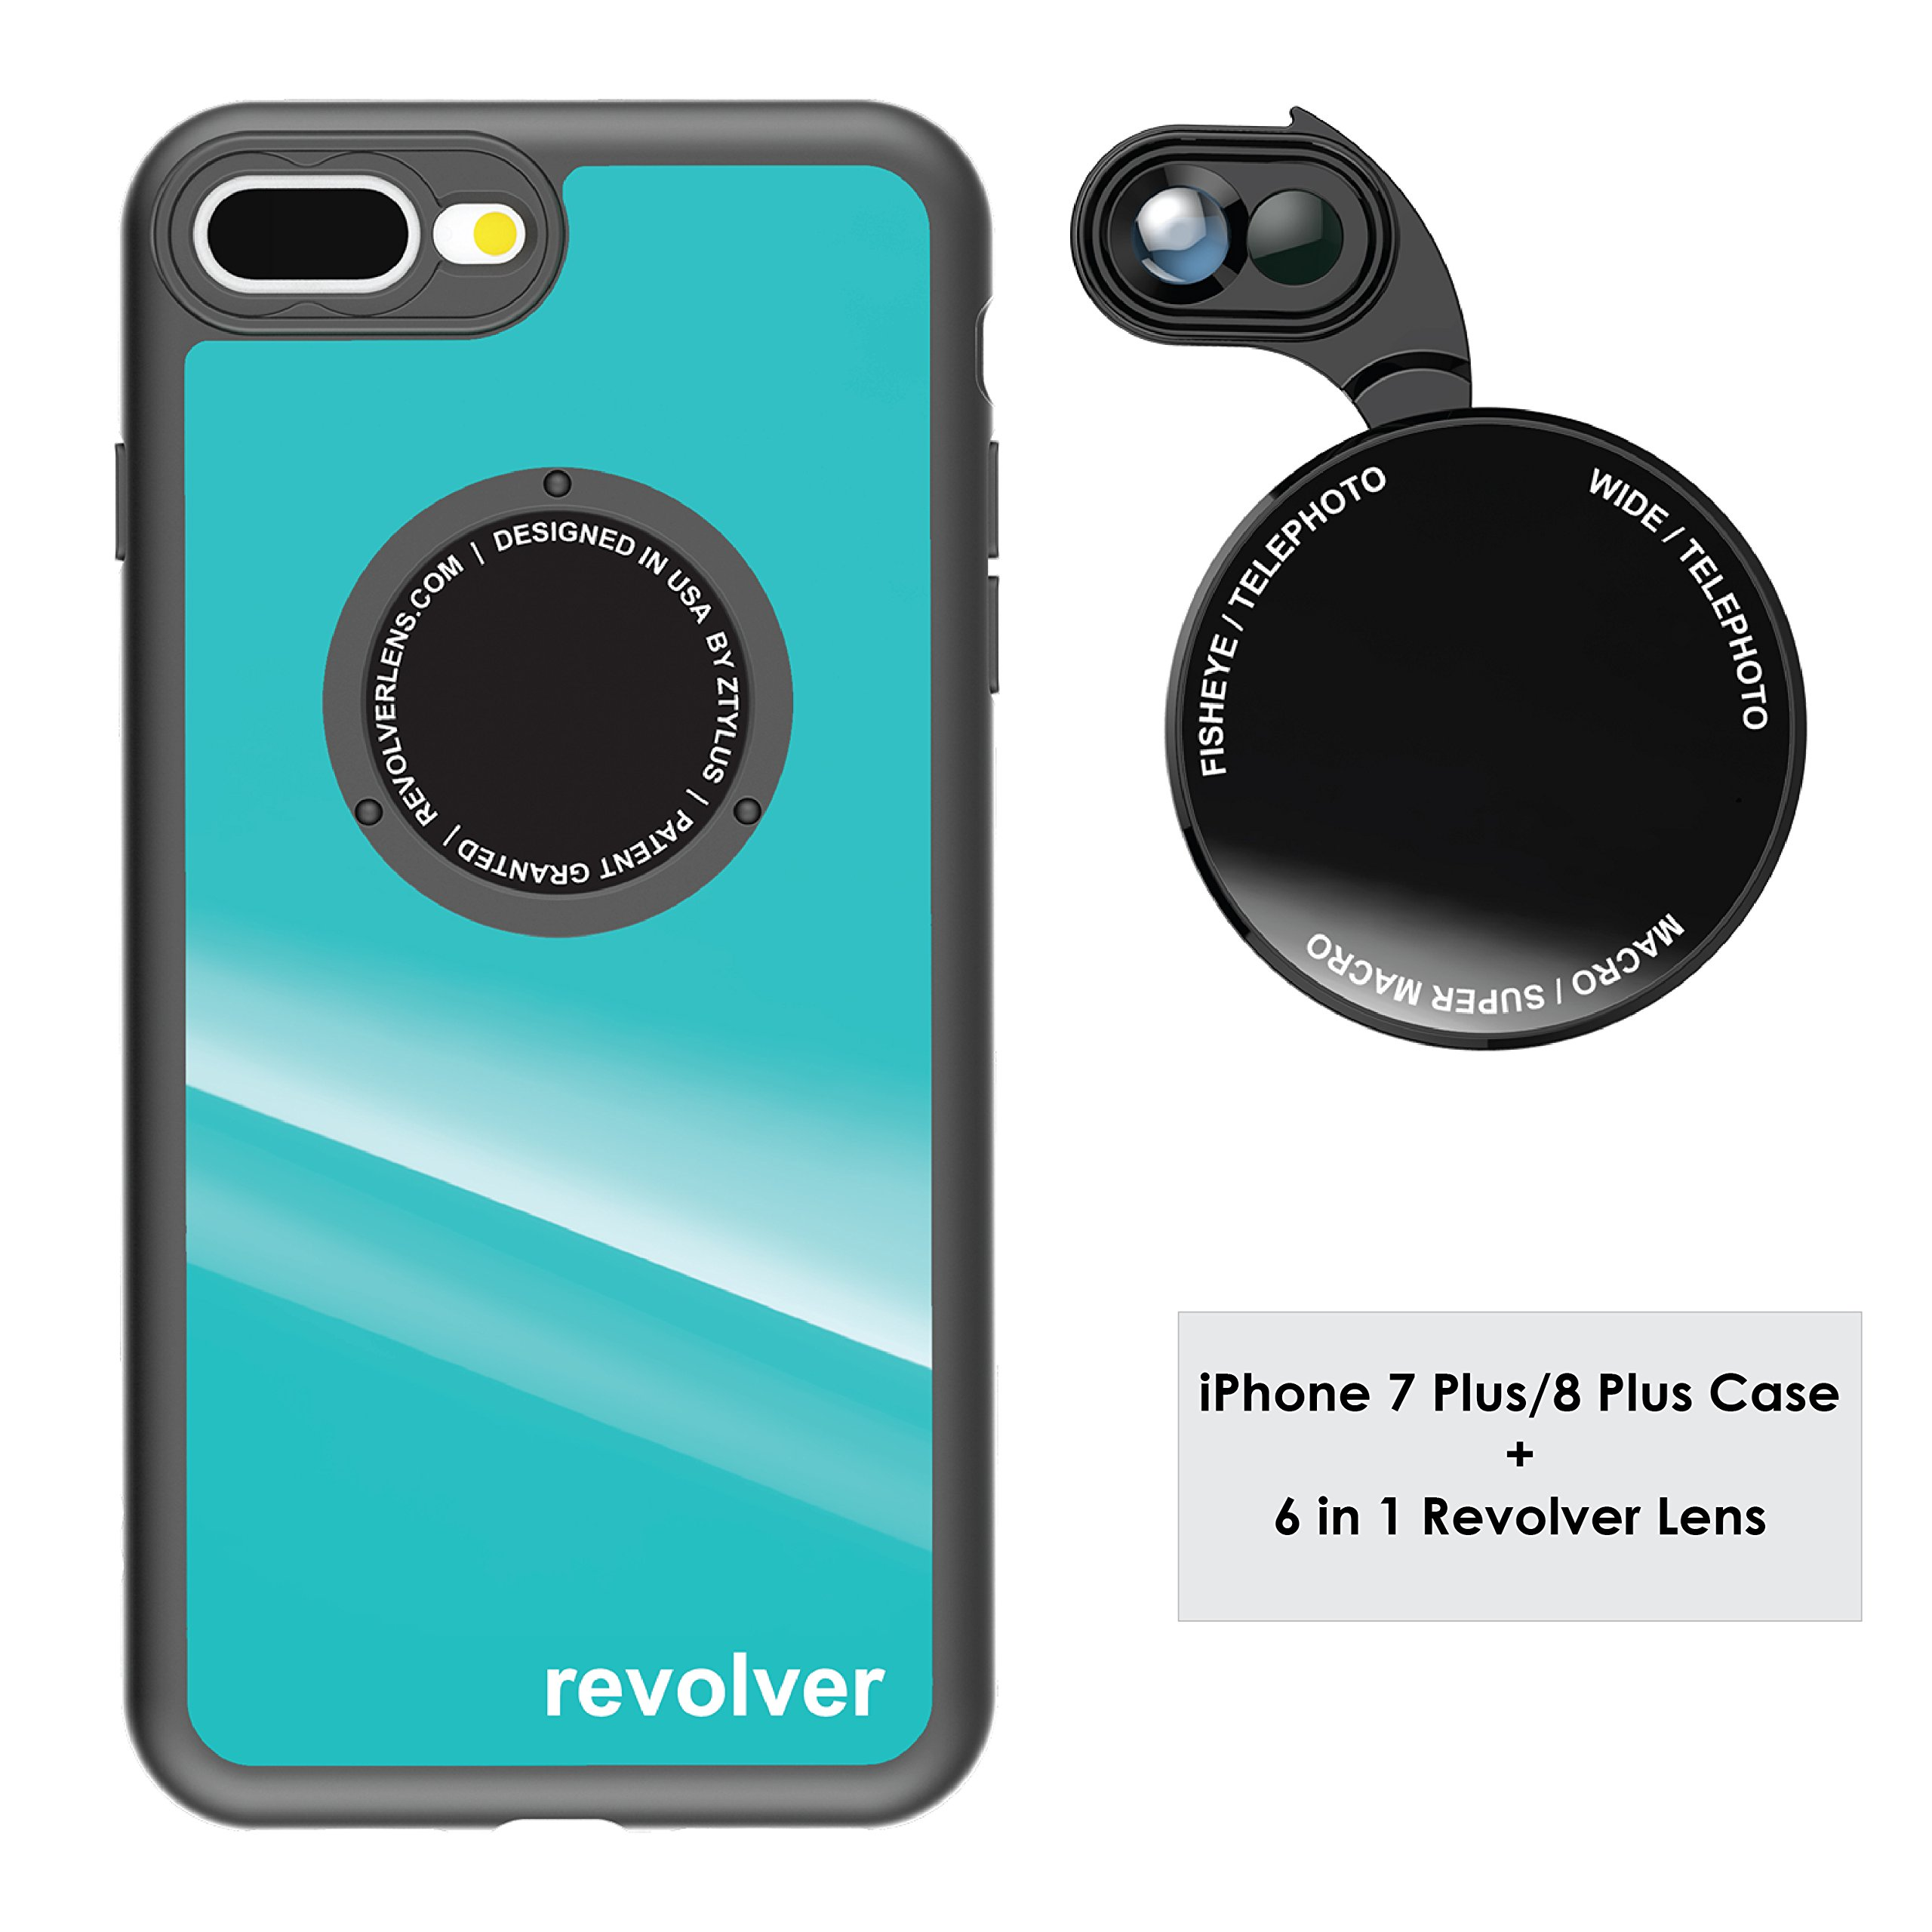 Ztylus Gloss Teal Revolver M Series Camera Kit: 6 in 1 Lens with Case for iPhone 7 Plus / 8 Plus - 2x Telephoto Lens, Macro, Super Macro Lens, Wide Angle Lens (Gloss Teal)